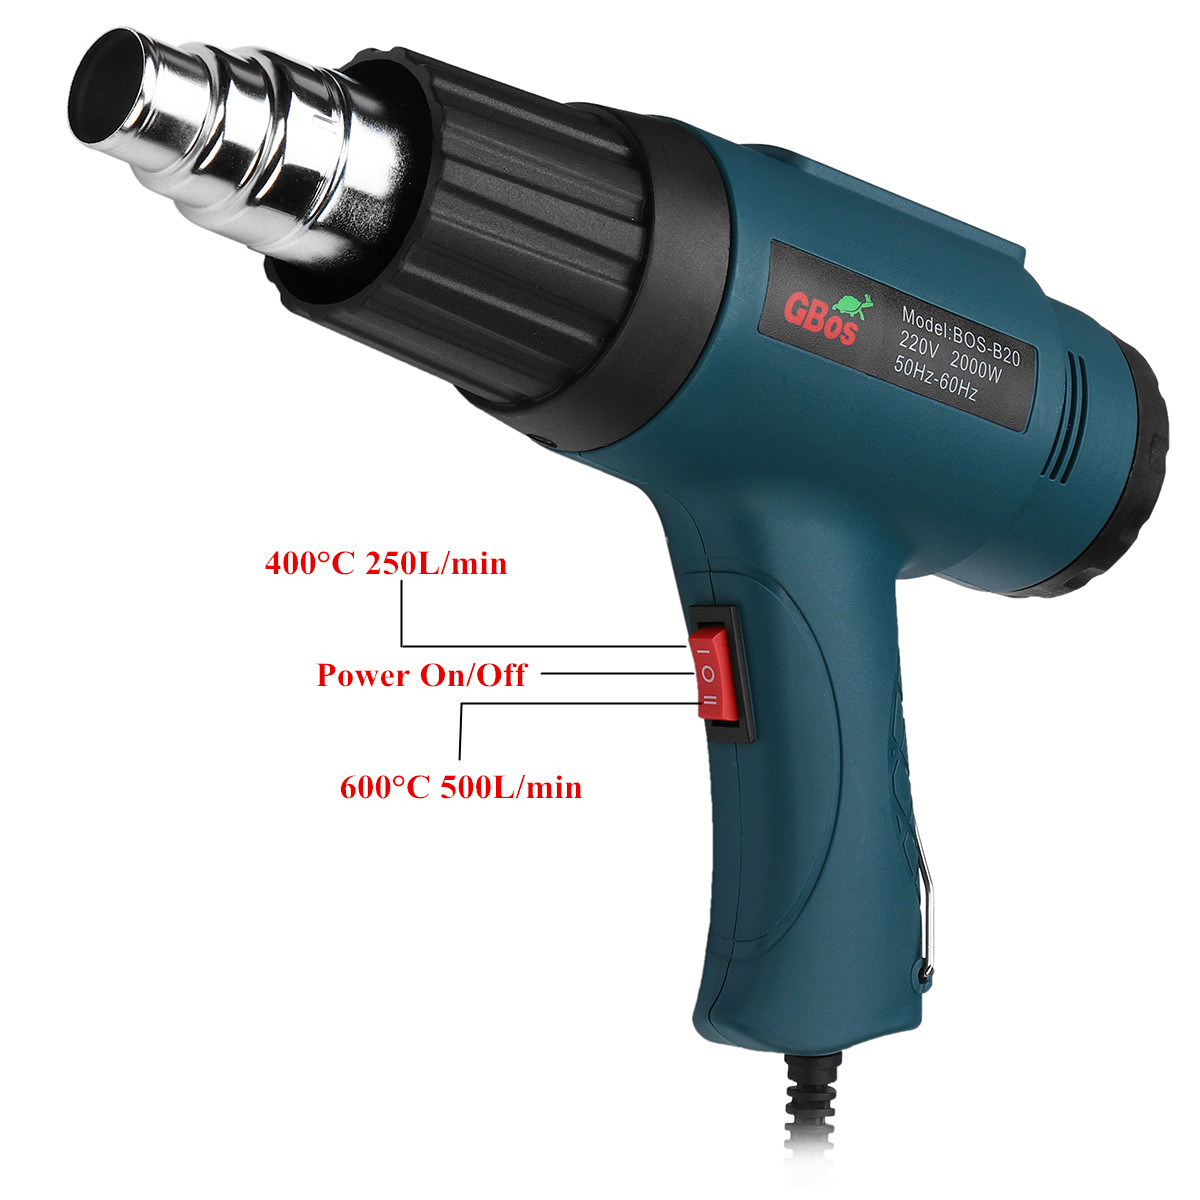 2000W Electric Hot Air Heating Gun Adjustable Temperature Power Tool Set + 4 Nozzles